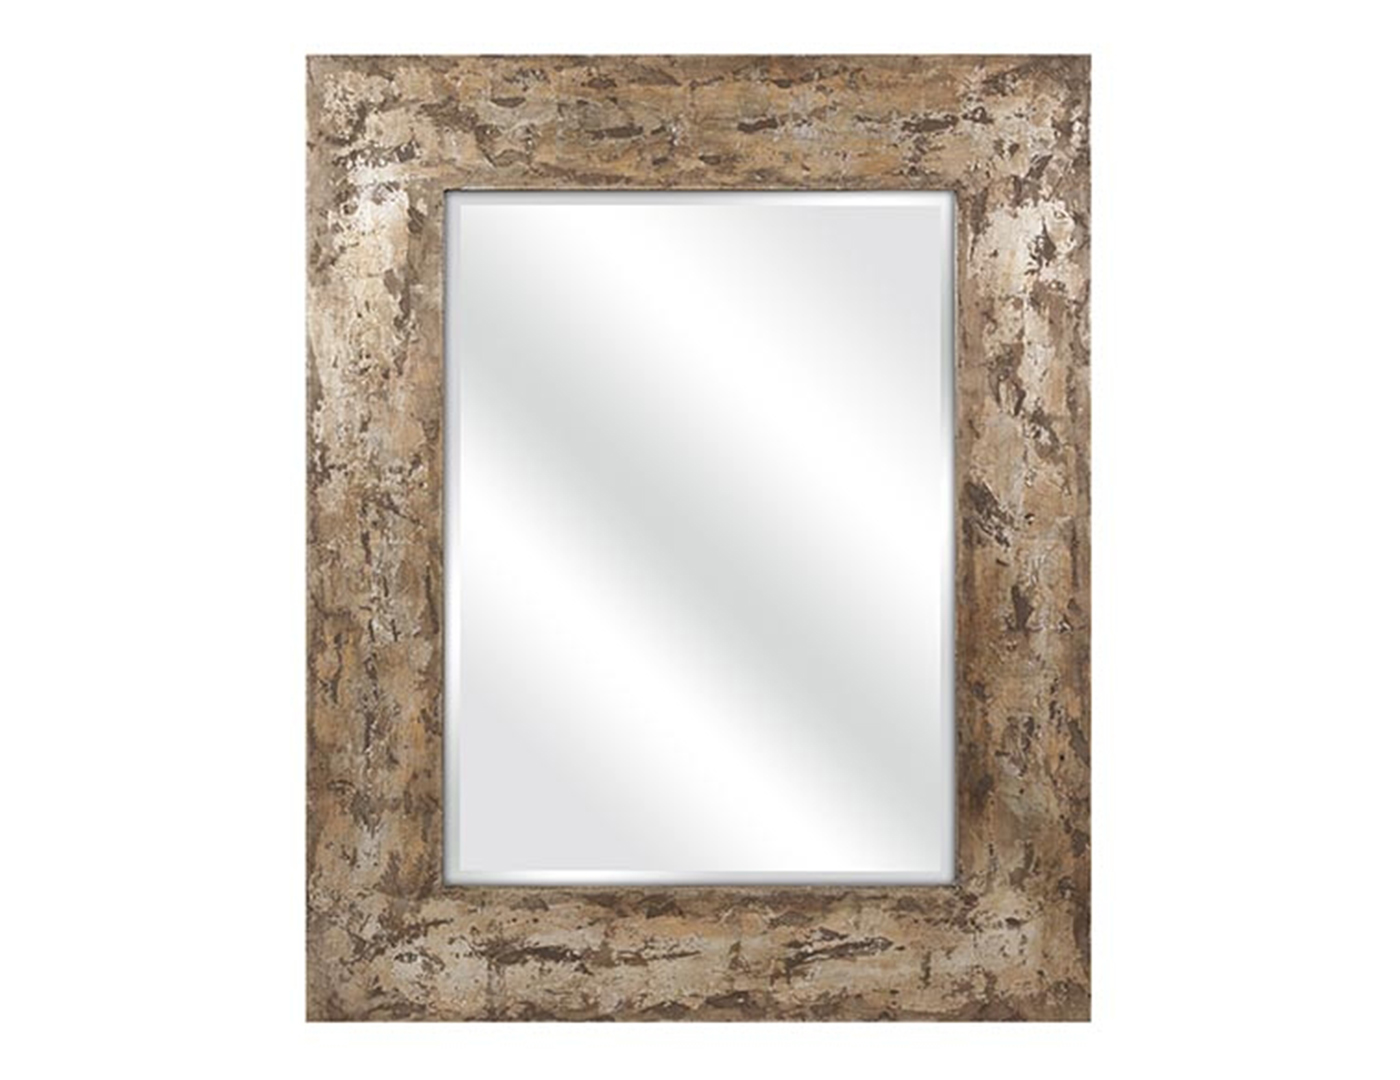 Tan and Bronze Framed Mirror